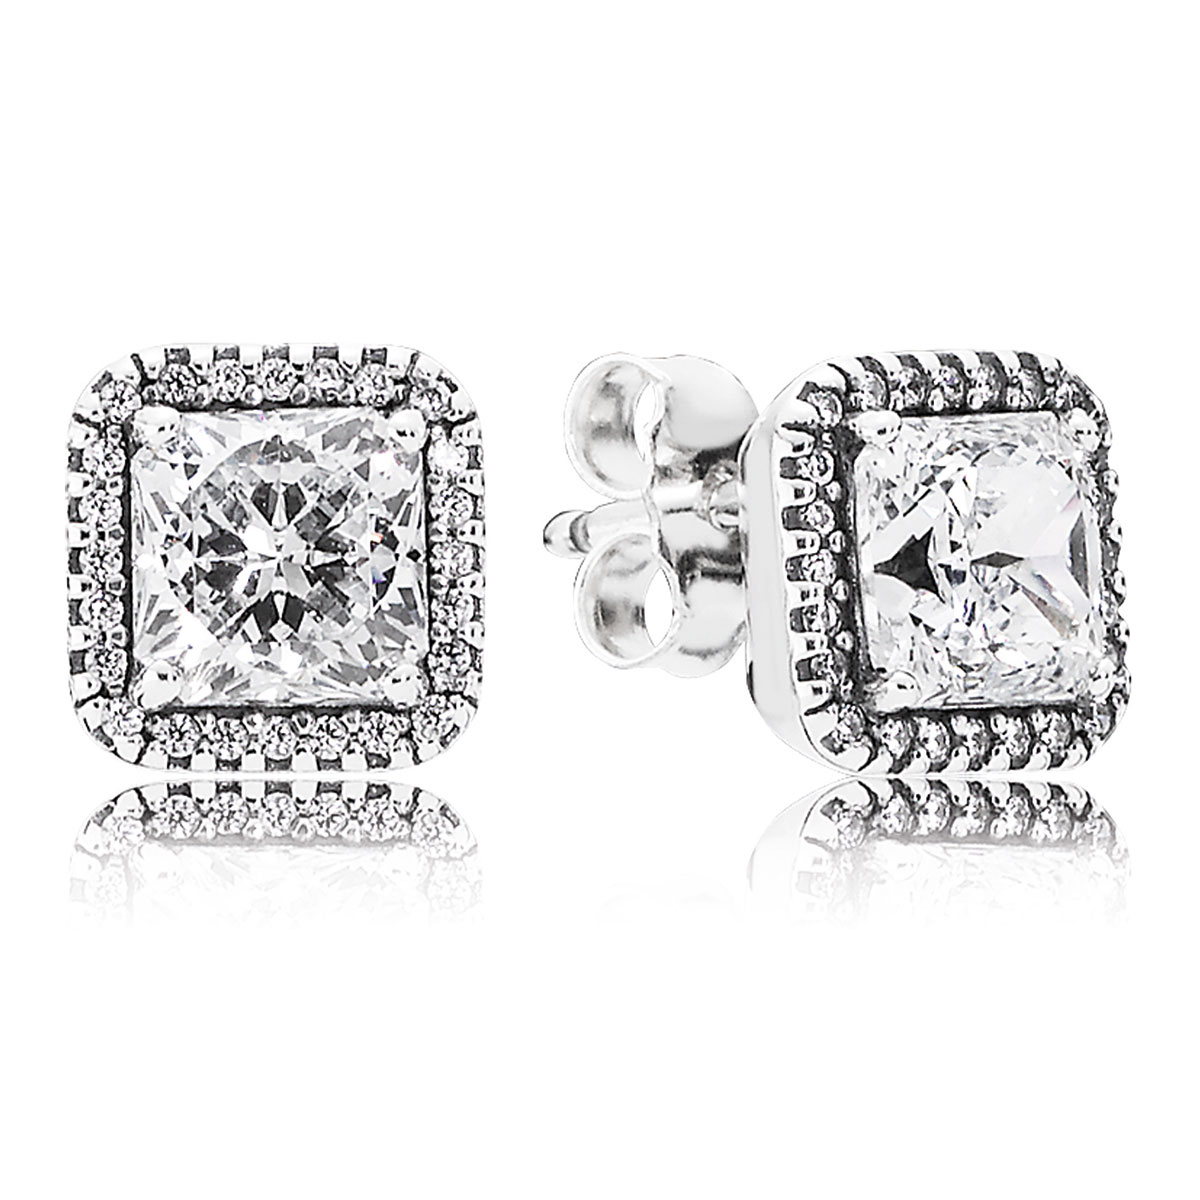 804-423-PANDORA Timeless Elegance with Clear CZ Stud Earrings